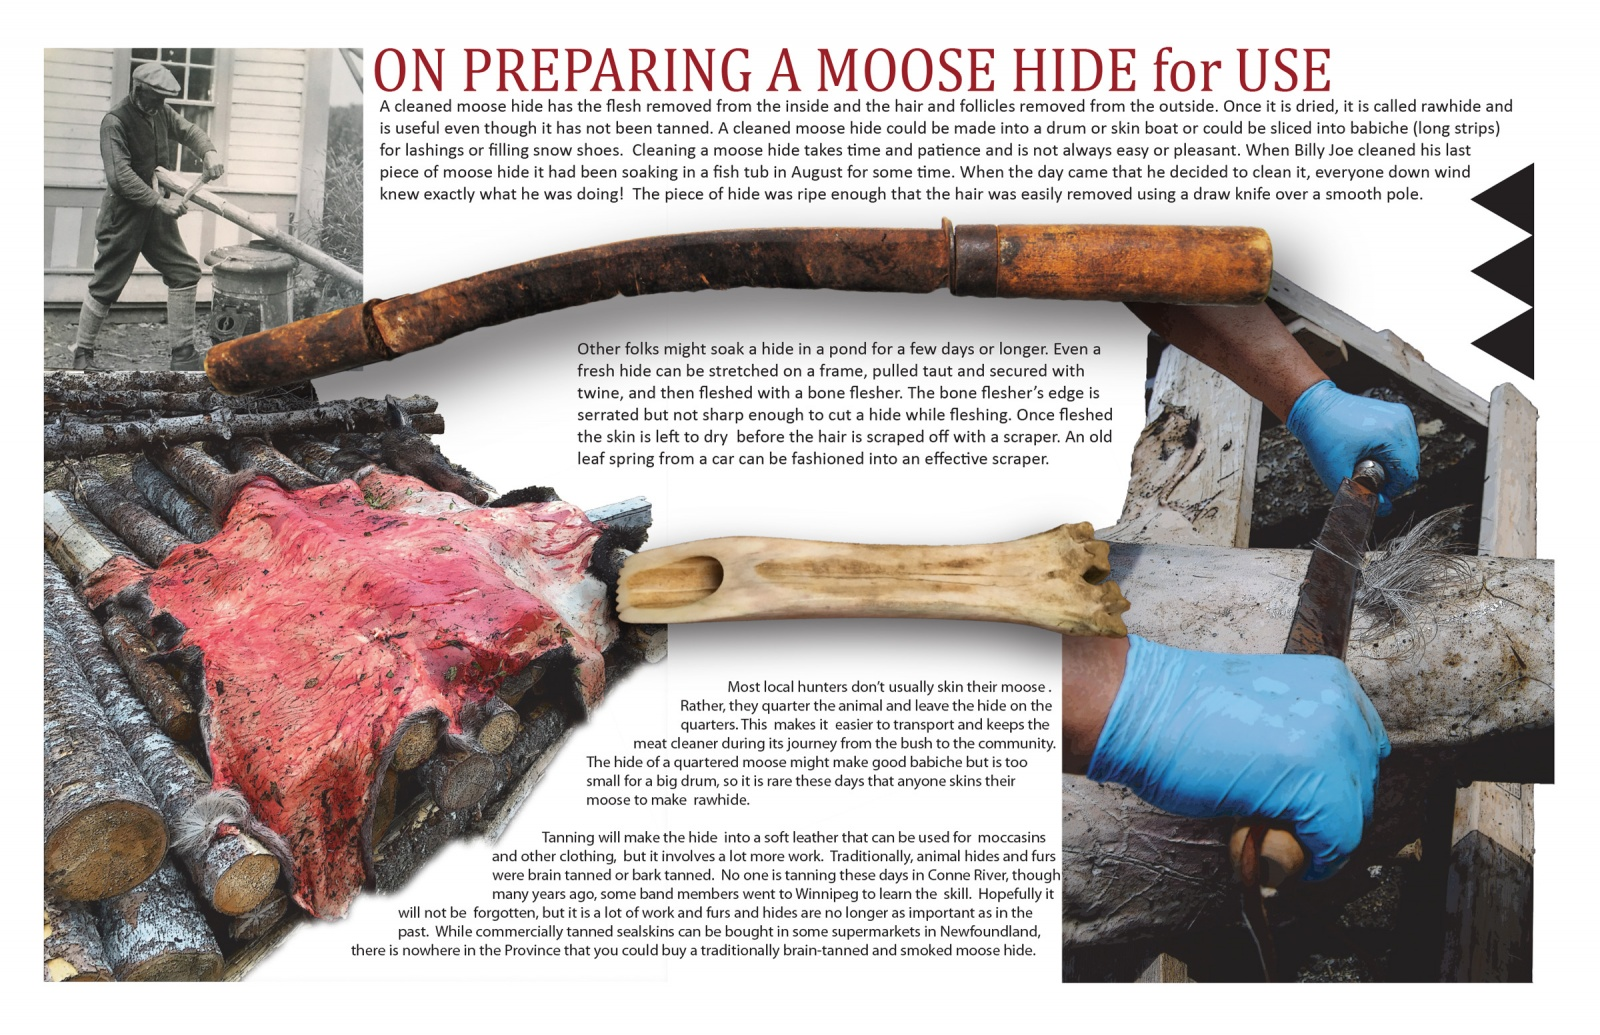 On Preparing a Moose Hide for Use